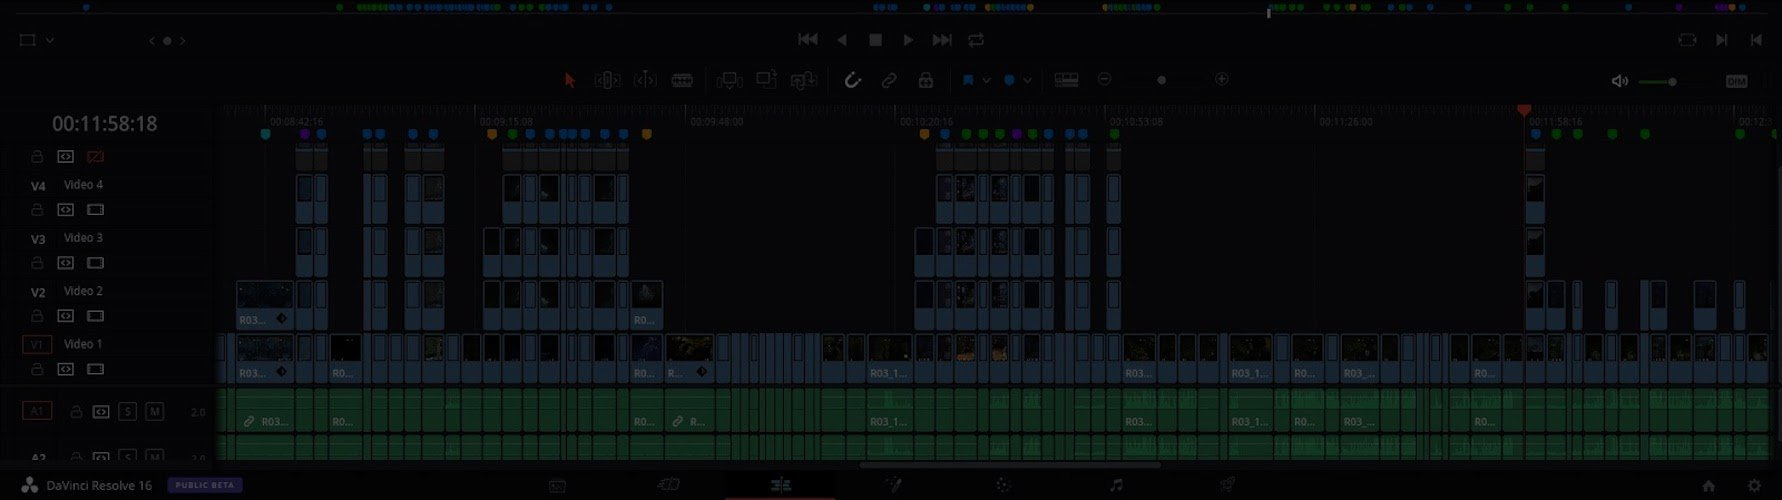 O2 Post – customizing ftrack and building a DaVinci Resolve pipeline